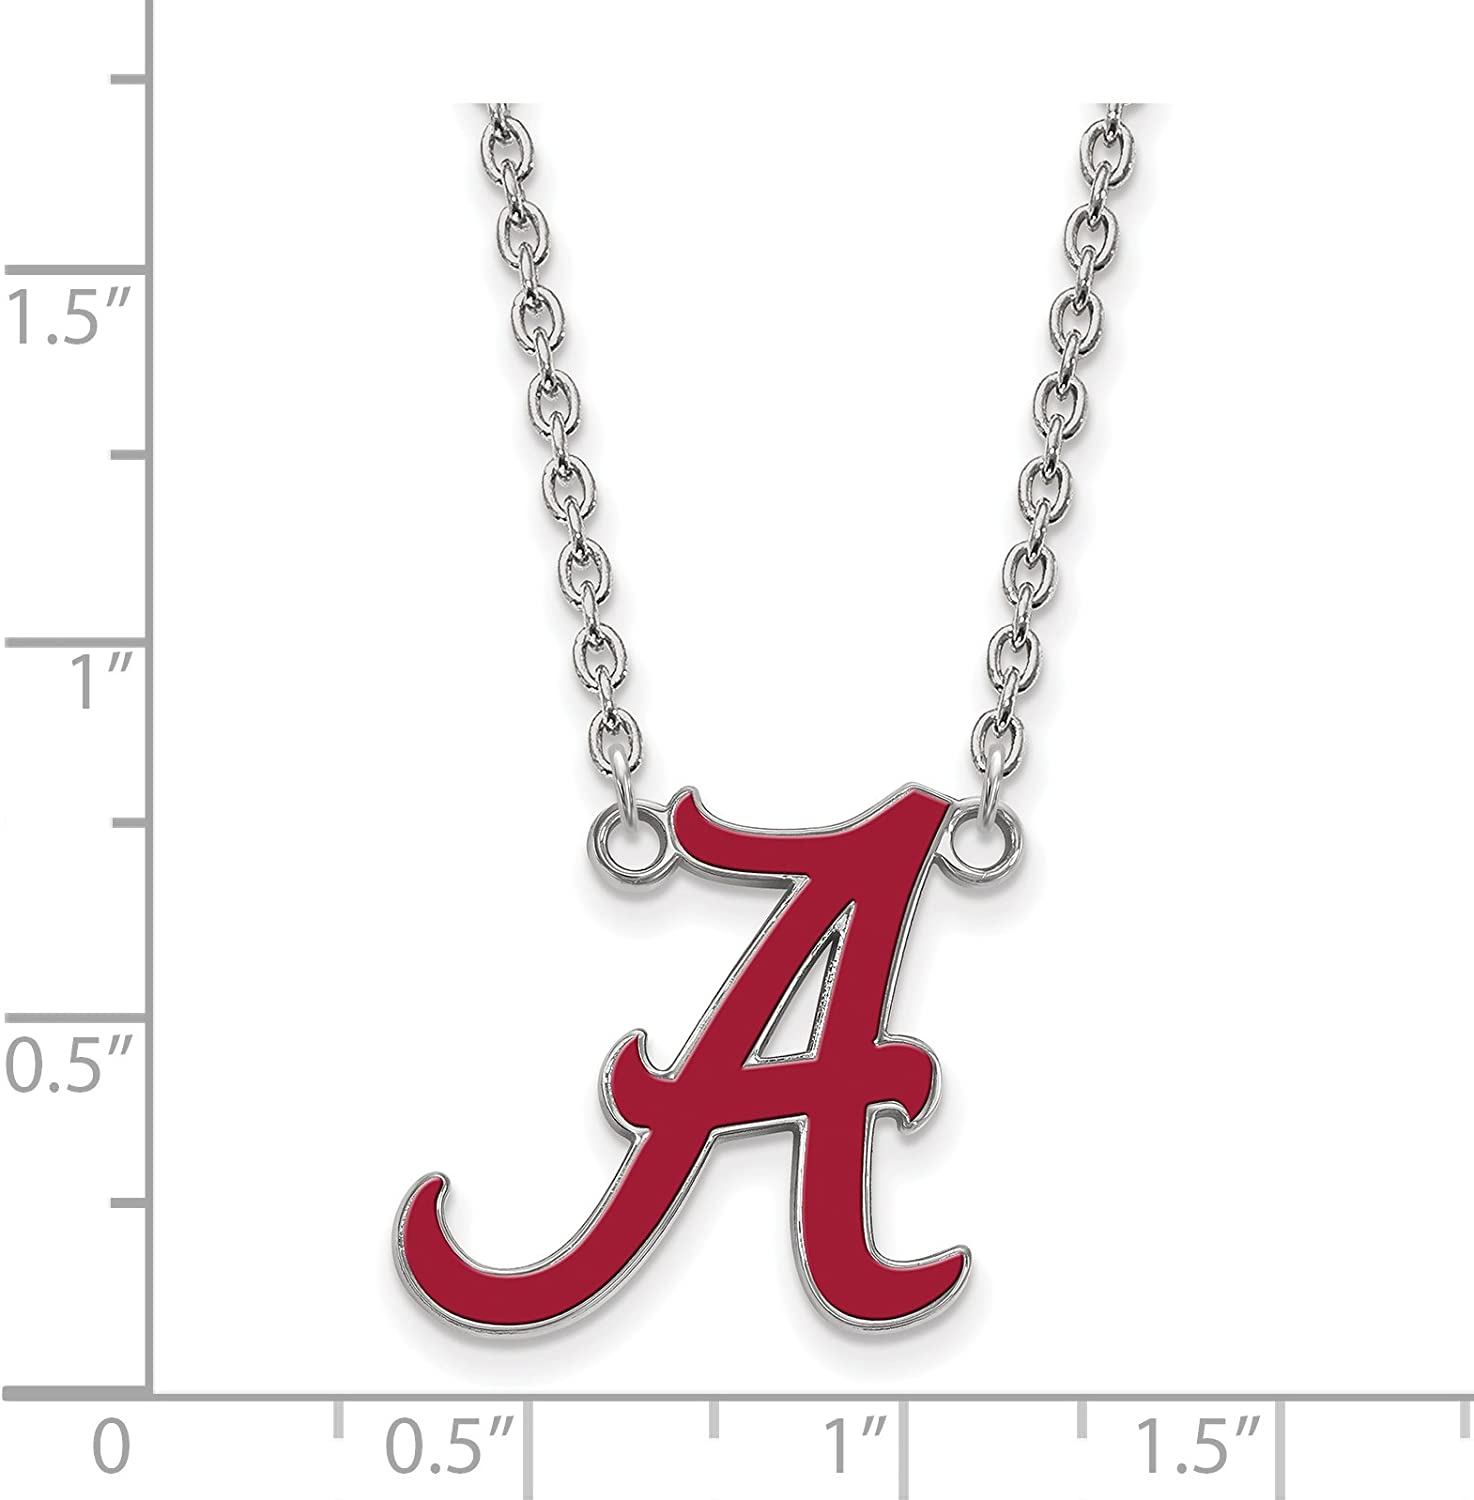 University of Alabama Crimson Tide Red School Letter Pendant with Necklace in Sterling Silver 18x19mm 18 Inches